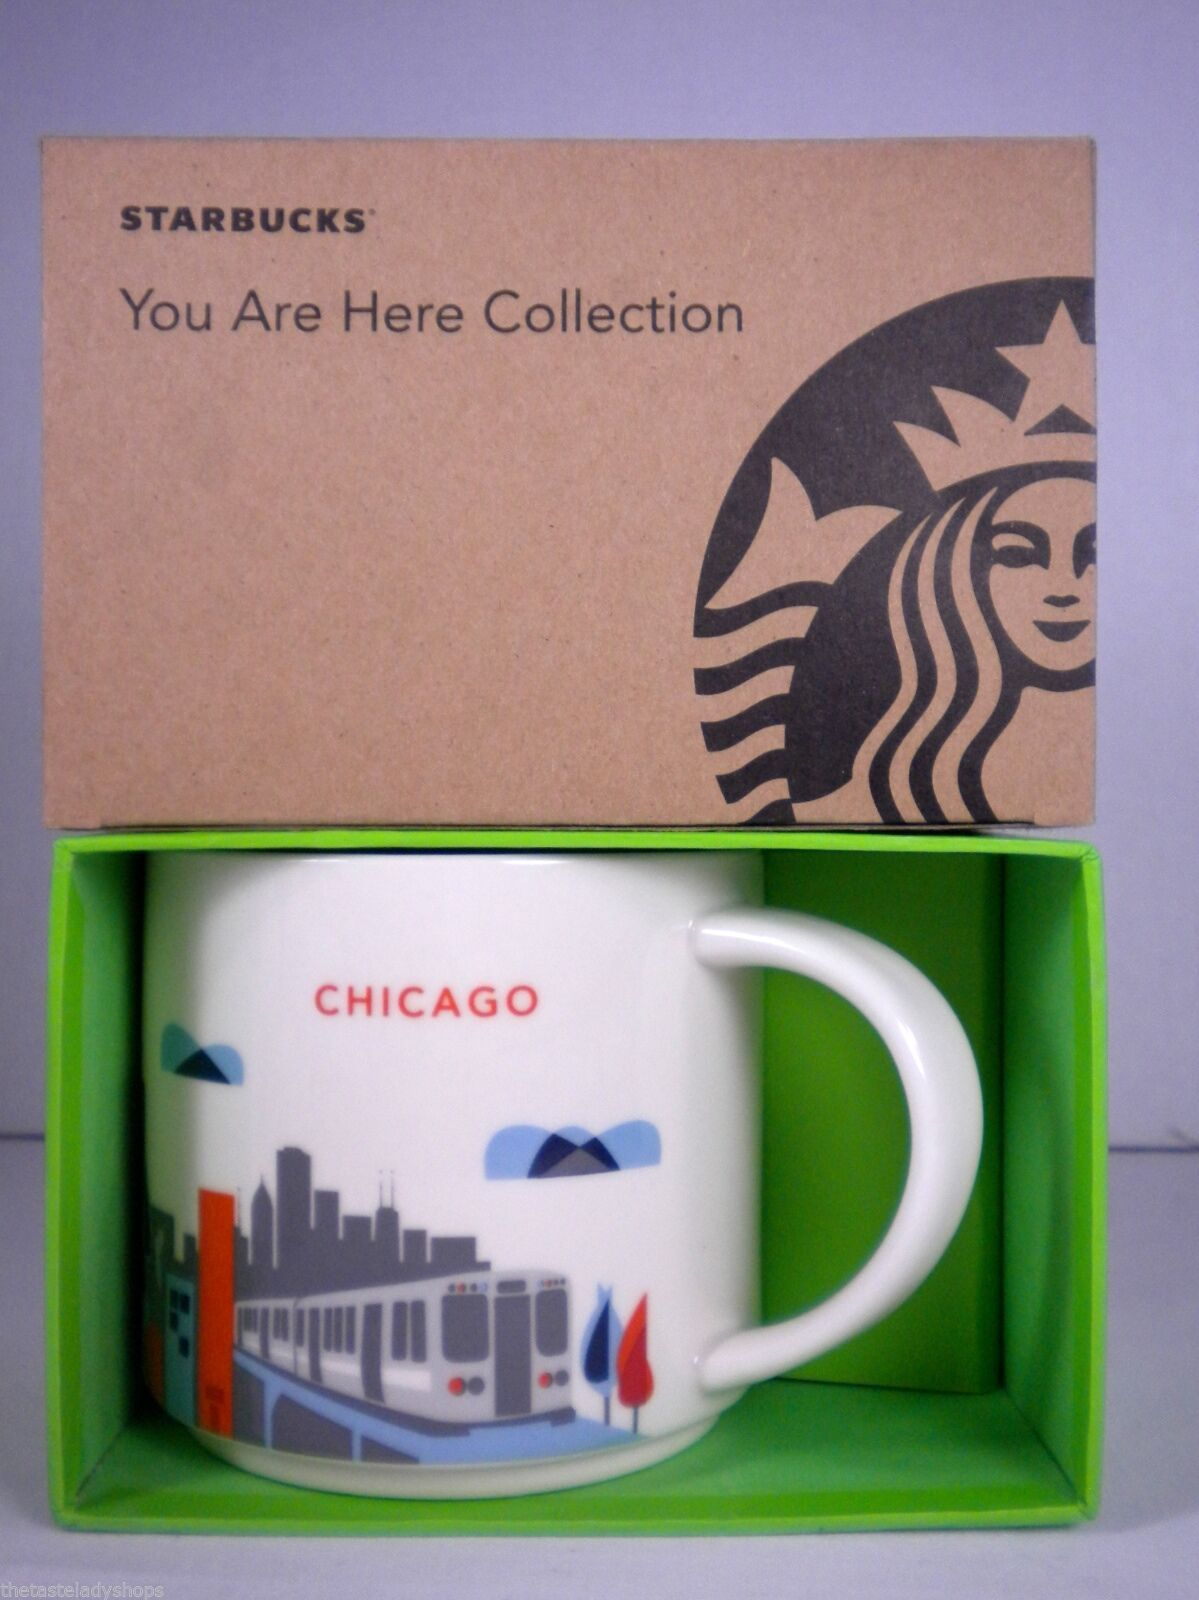 Starbucks Chicago You Are Here Collection Mug Cup NEW in Box Skyline, L Train